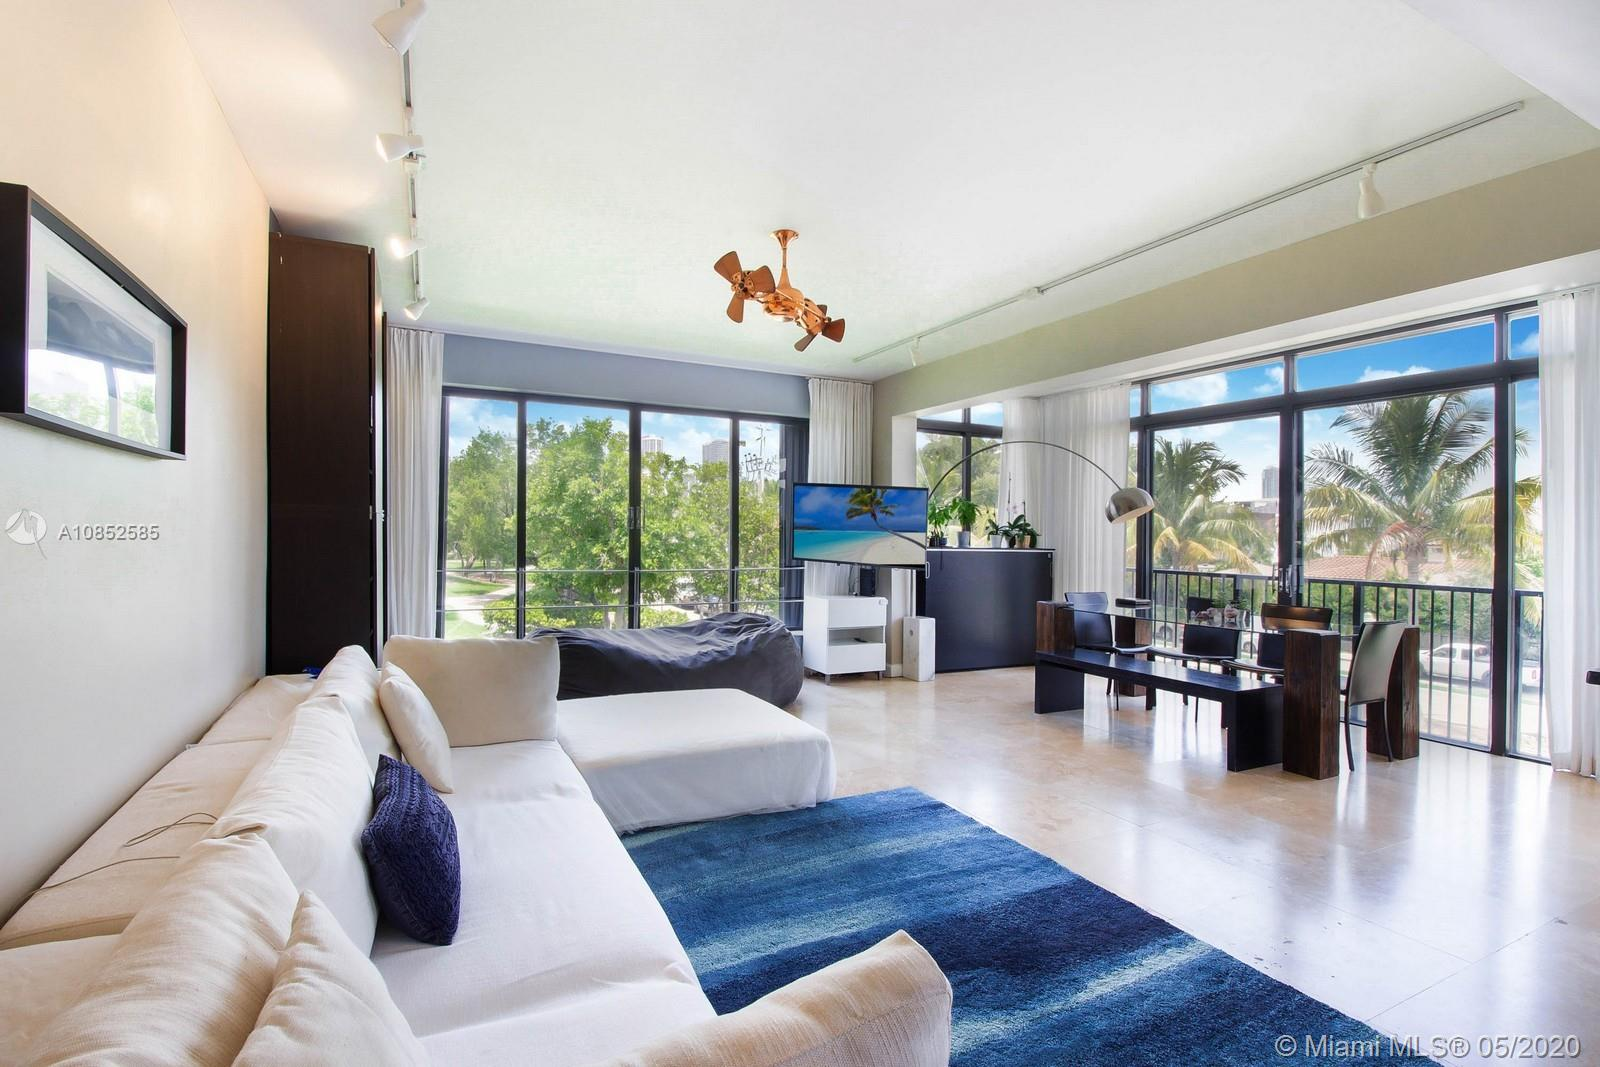 This Venetian townhome offers spectacular panoramic views, with 2,400 SF living space and a 1,200 SF roof-top terrace with views of downtown Miami, the Atlantic Ocean, and Biscayne Bay. The main floor living area includes floor to ceiling windows overlooking the park and the water. The second floor features the kitchen, dining, family room and a bedroom and bath.  Upstairs on the 3rd floor is the master bedroom, den and master bath.  The Venetian amenities include 24 hour concierge, covered parking, 2 swimming pools, fitness center, sauna, BBQ area, clubhouse and 2 lighted tennis courts.